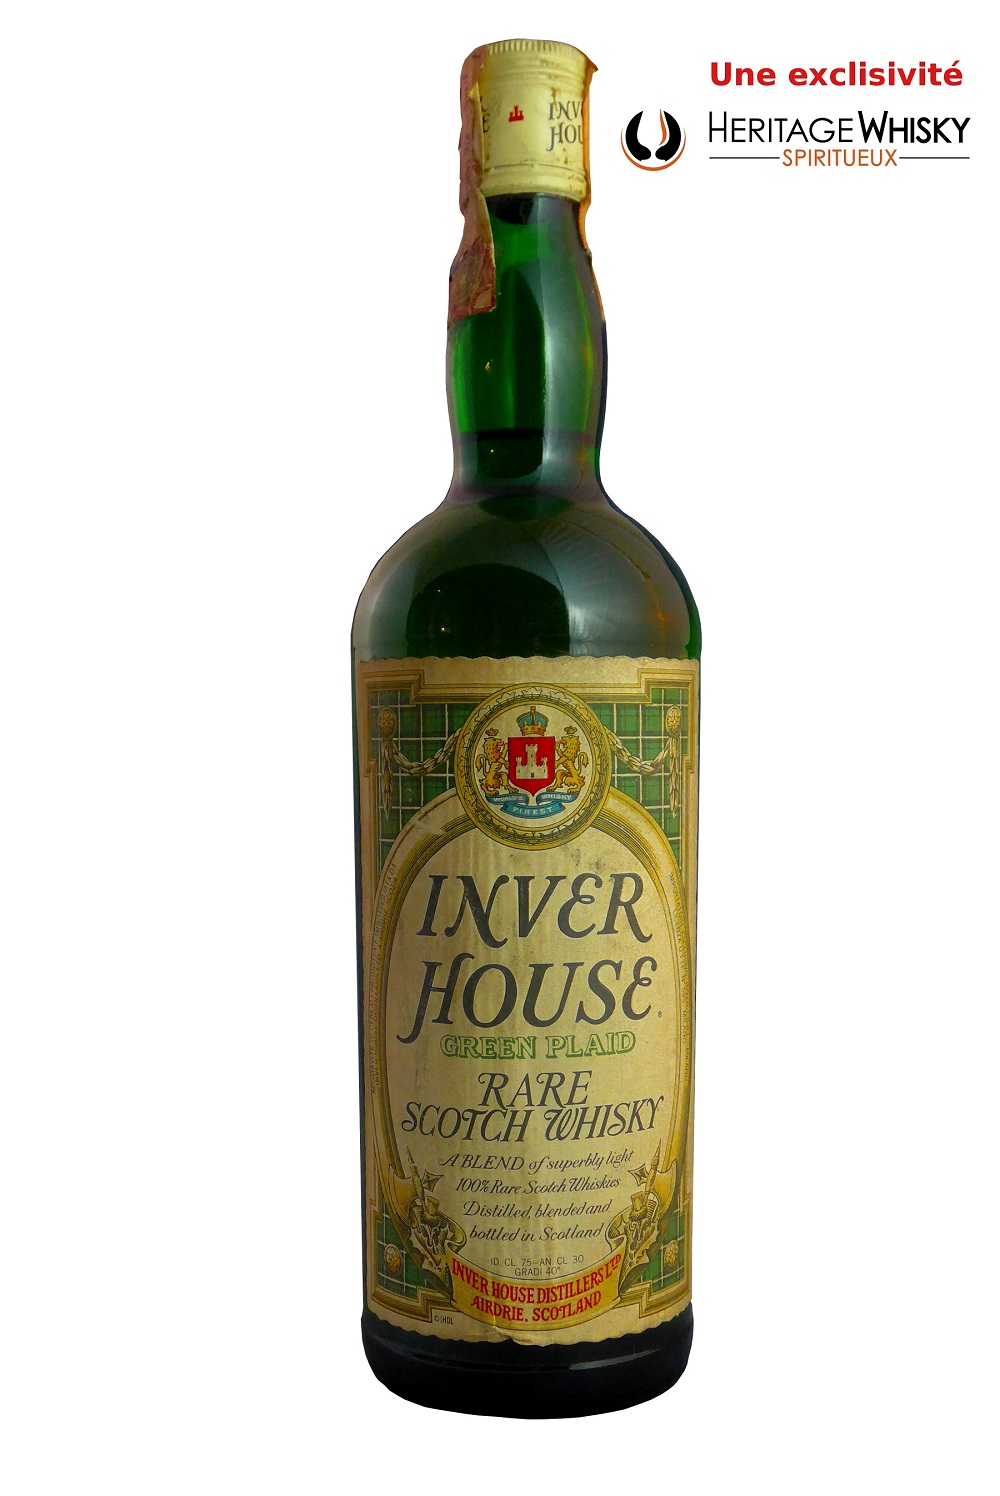 INVER HOUSE Green Plaid Rare Scotch Whisky 40%